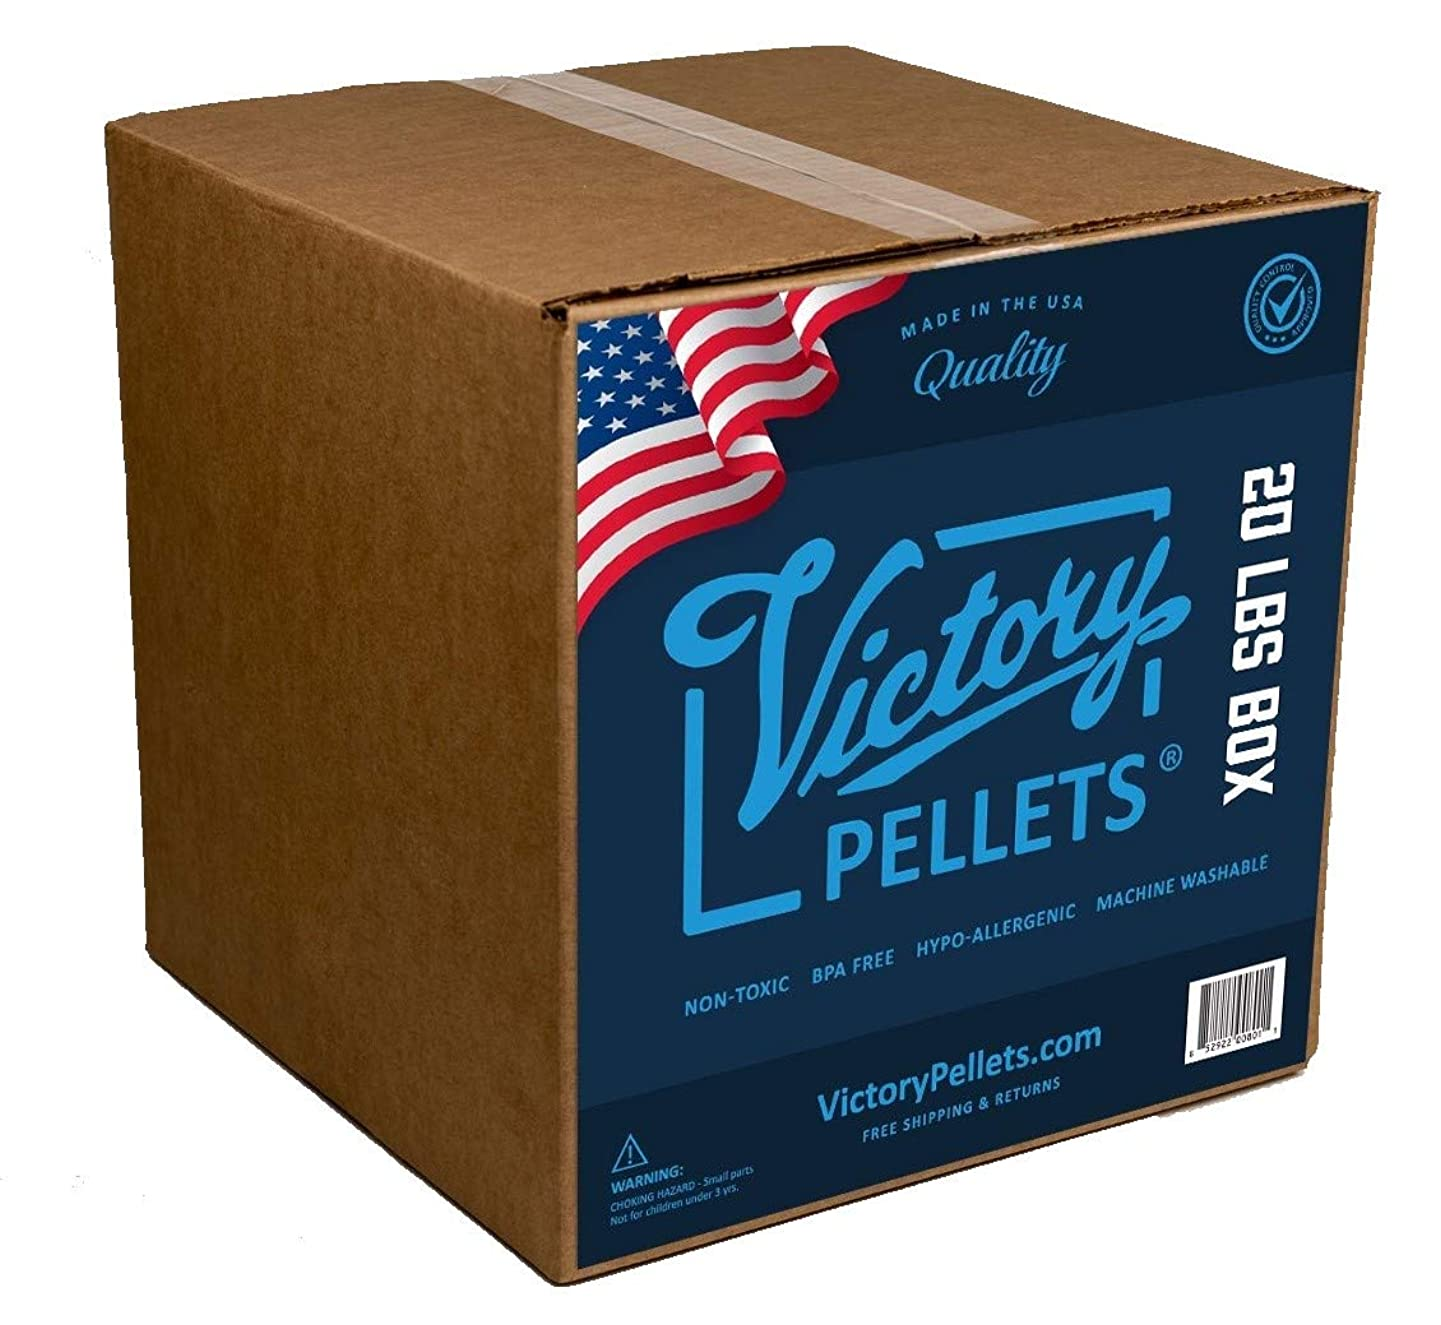 Victory Pellets (20 Pounds) Plastic Pellets for Weighted Blankets, Rock Tumbling, Reborn Dolls, Stuffed Bears, Crafts, Draft Stoppers, Game Changer Bags. Washer & Dryer Safe. Made in USA.